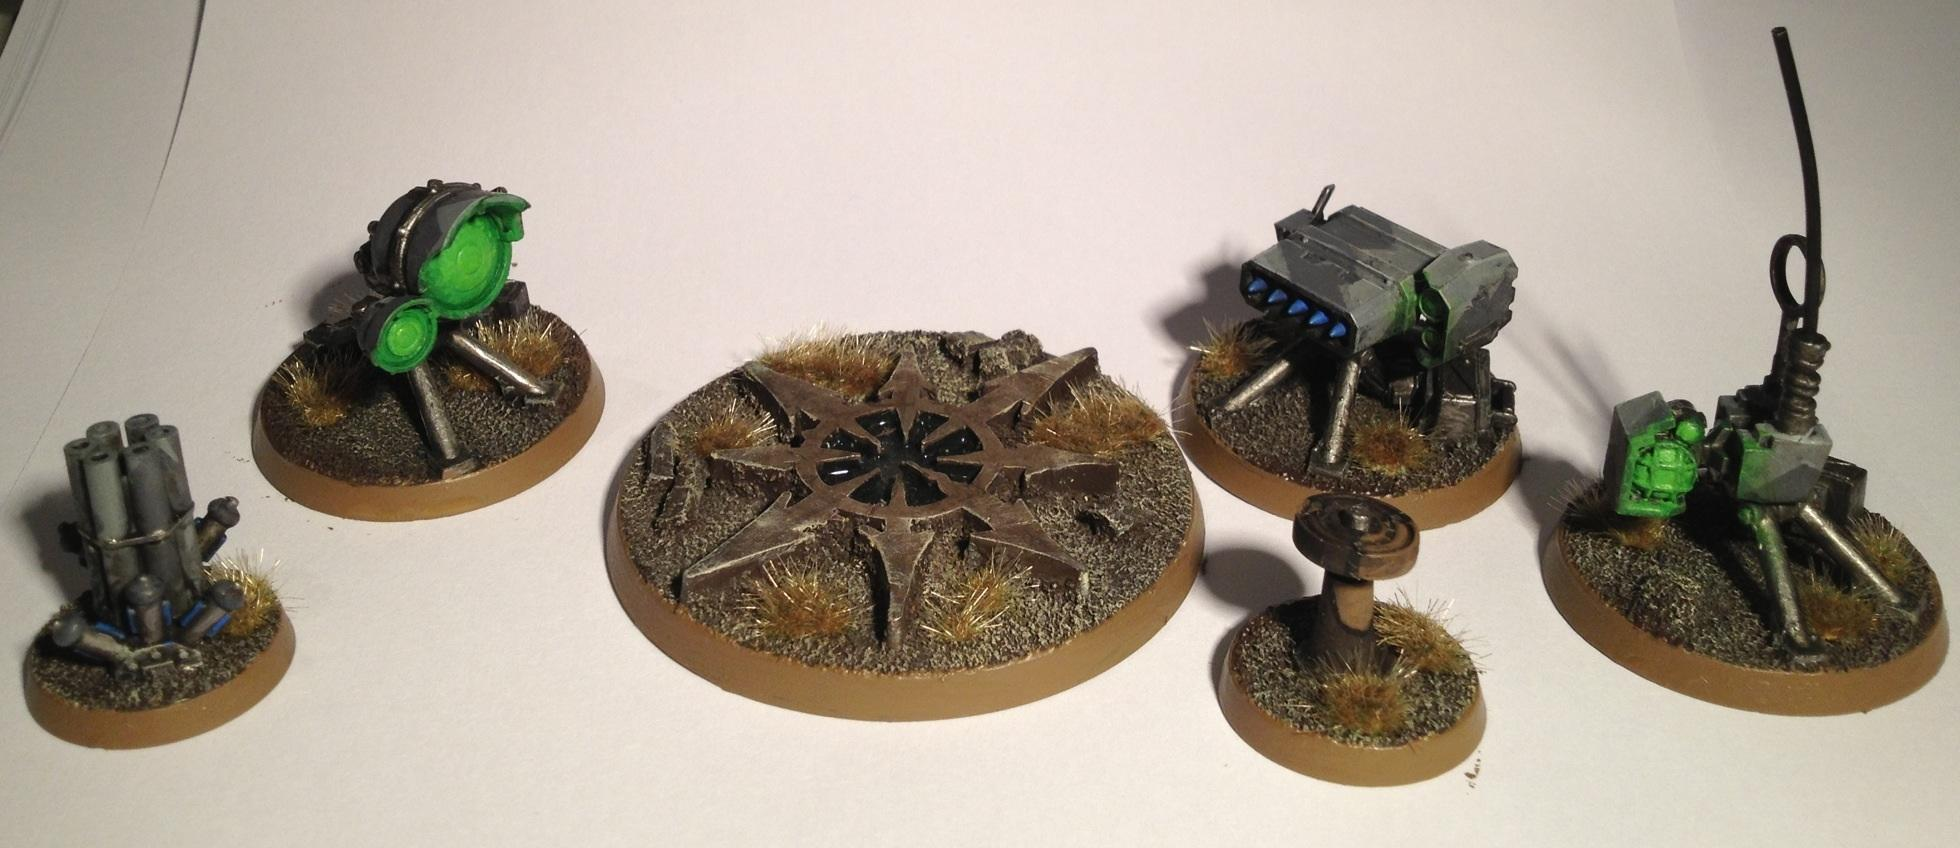 Chaos, Heavy Weapon, Icon, Imprrial Guard, Missile Launcher, Objective Marker, Search Light, Tau, Tripod, Warhammer 40,000